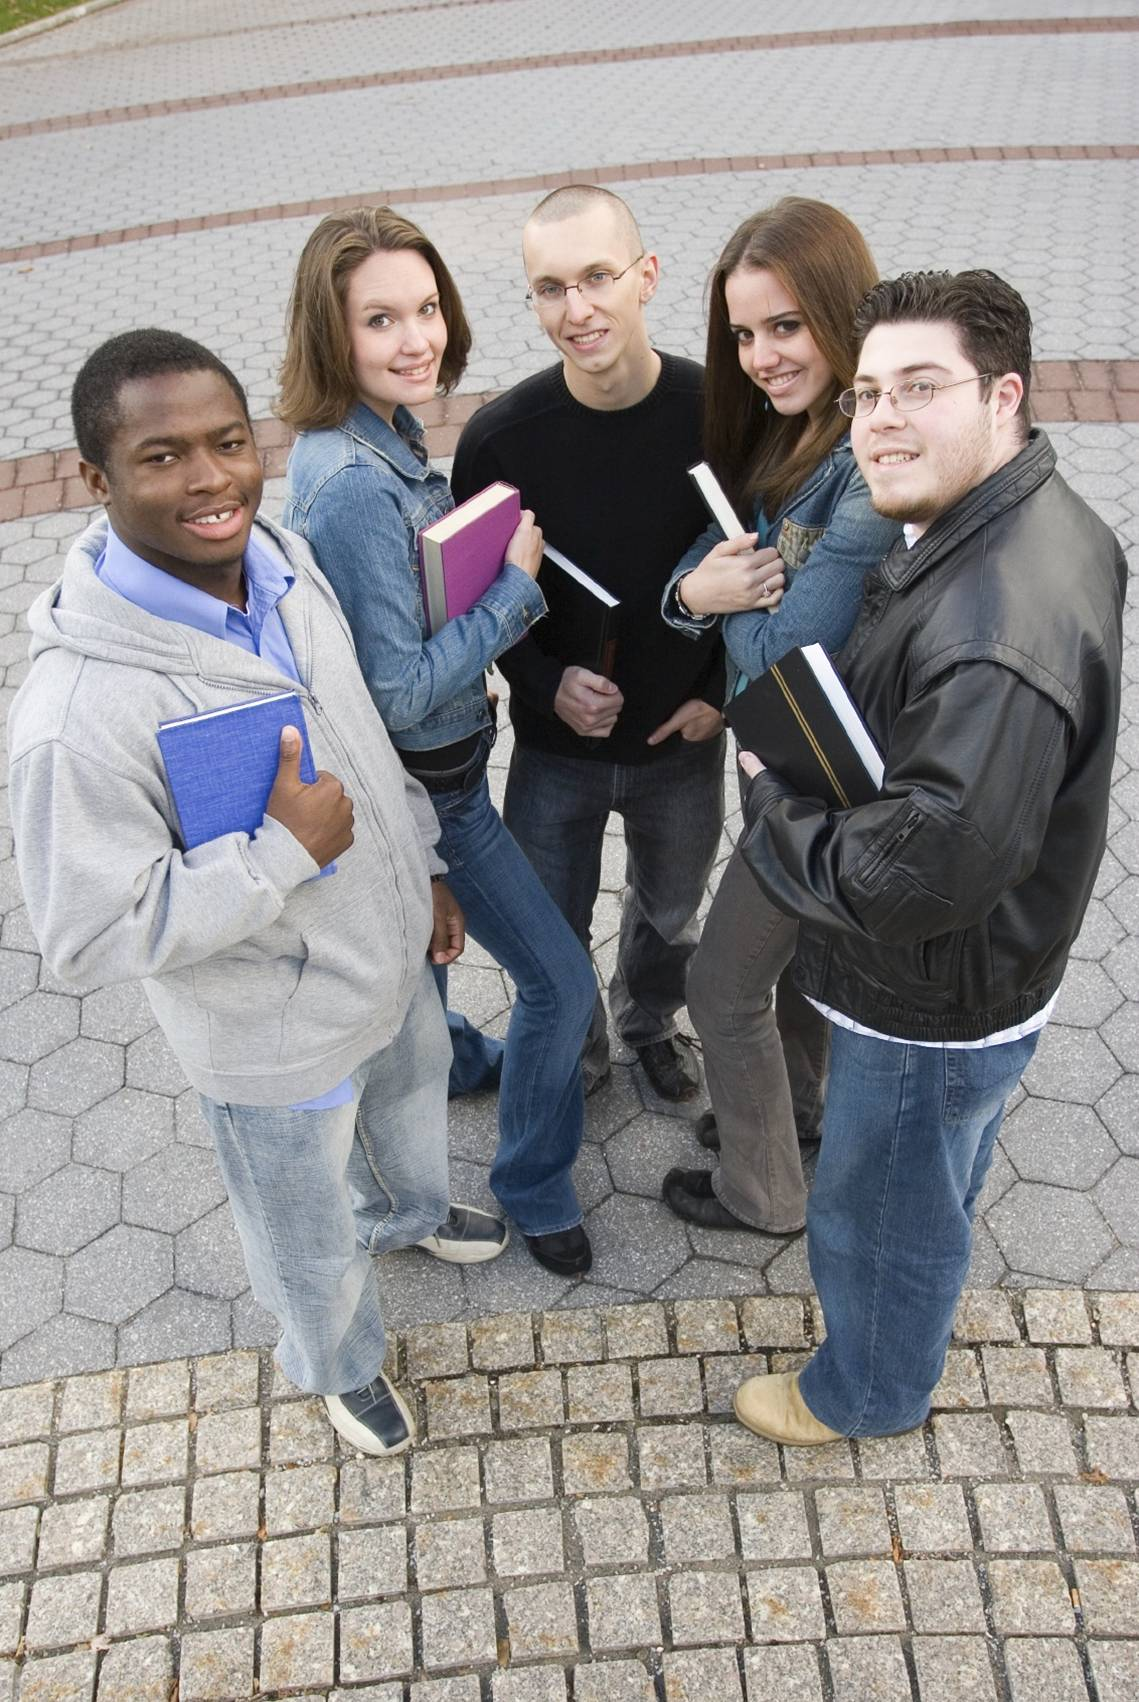 College Students chatting outside